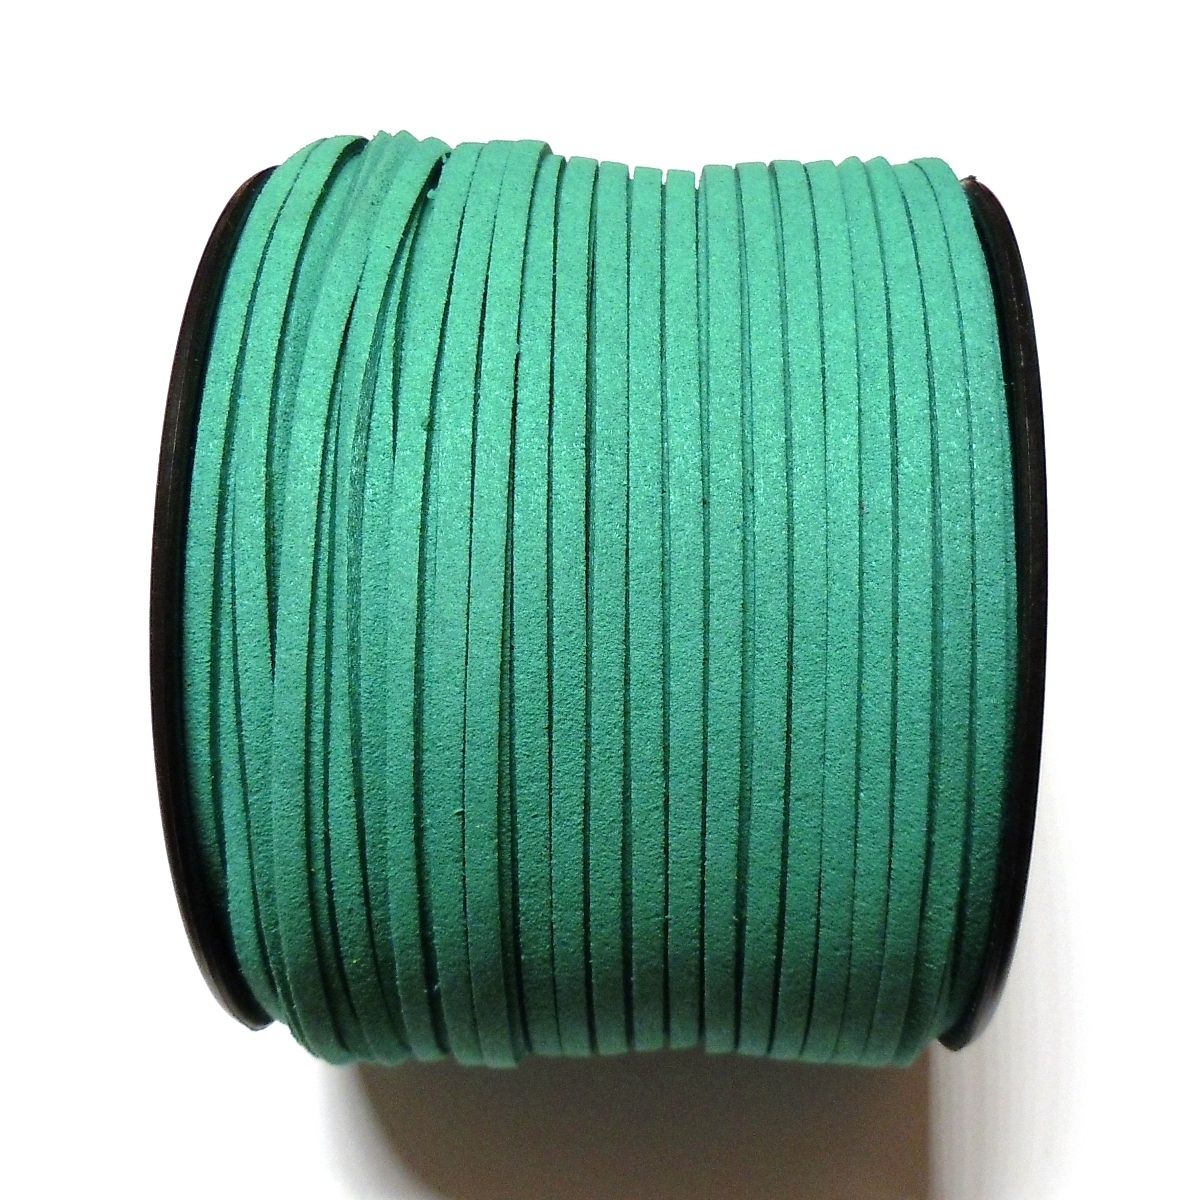 Imitation Flat Suede Cord 3mm - Turquoise 67